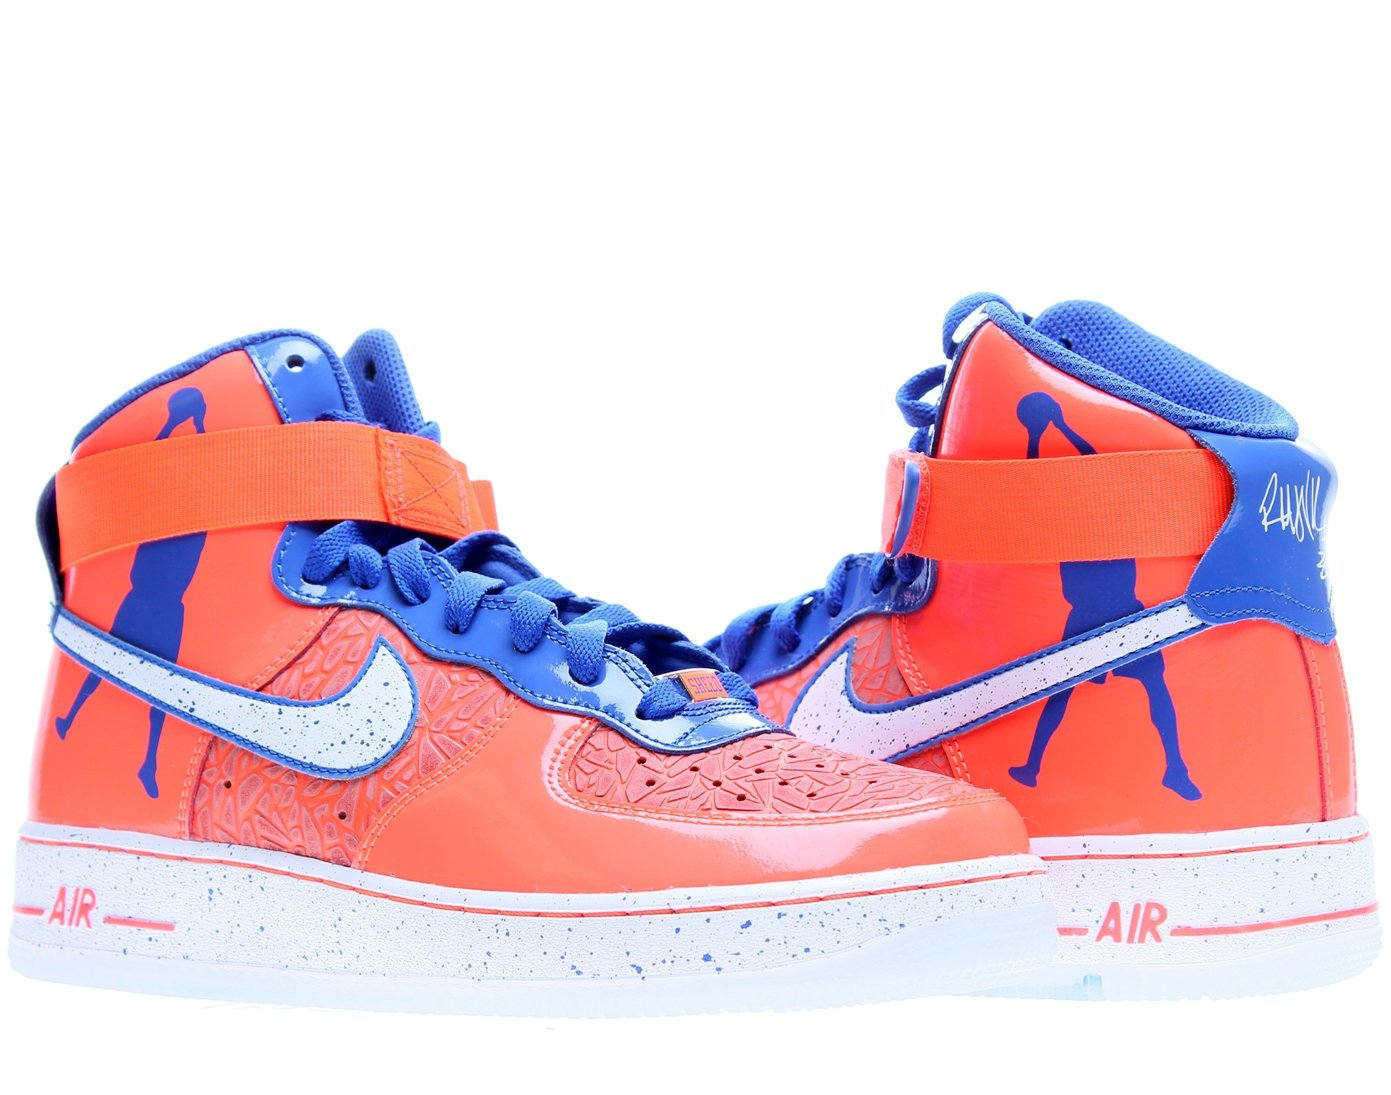 Nike Air Force 1 Hi Premium Rasheed Wallace Sneaker